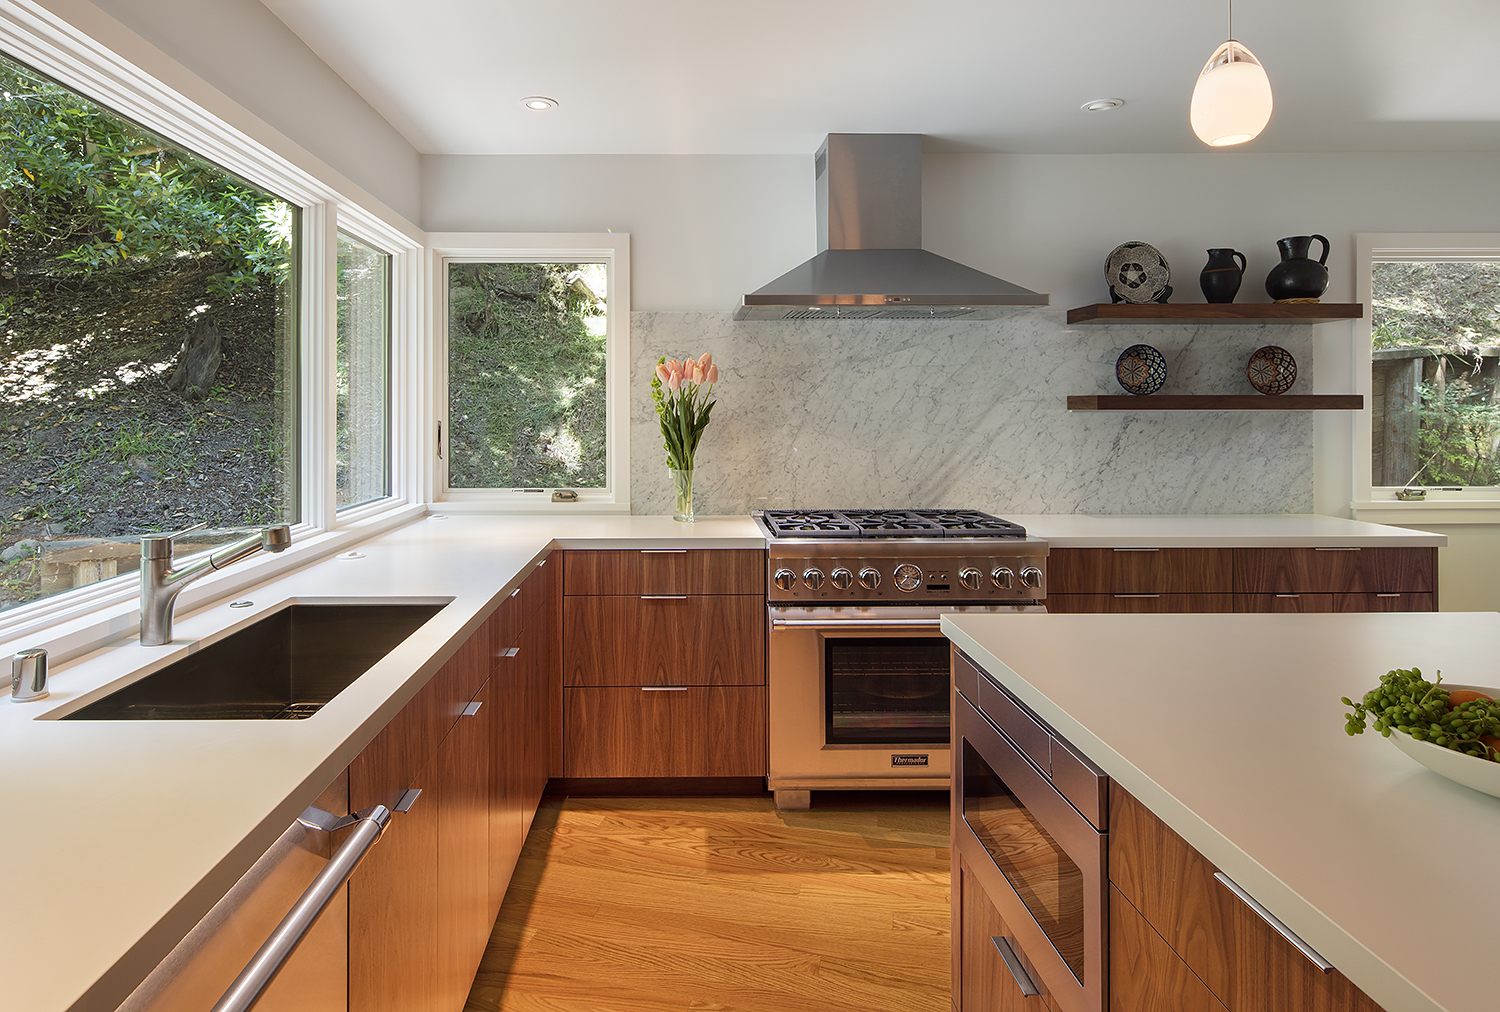 Midcentury Modern Kitchen Remodel in the Oakland Hills